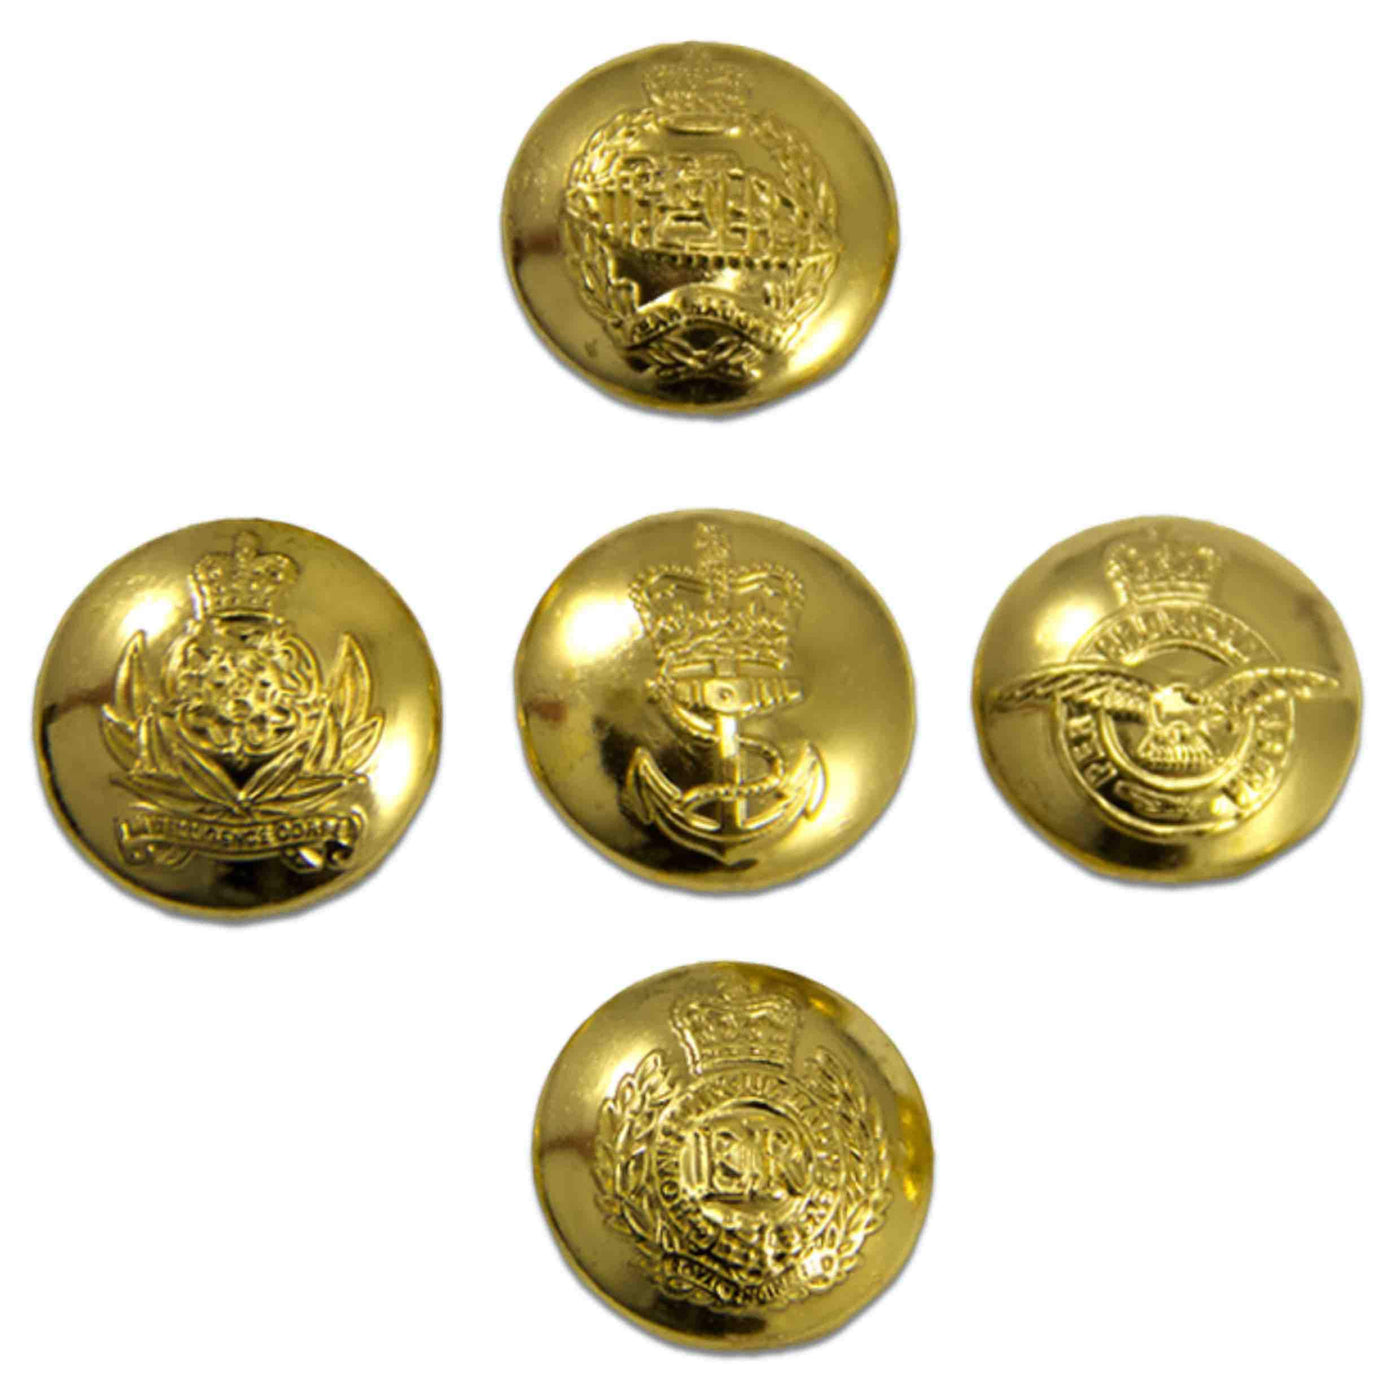 Regimental Blazer Buttons, RLC Buttons, REME Buttons, Guards Buttons, PWRR Buttons, Regiment Button